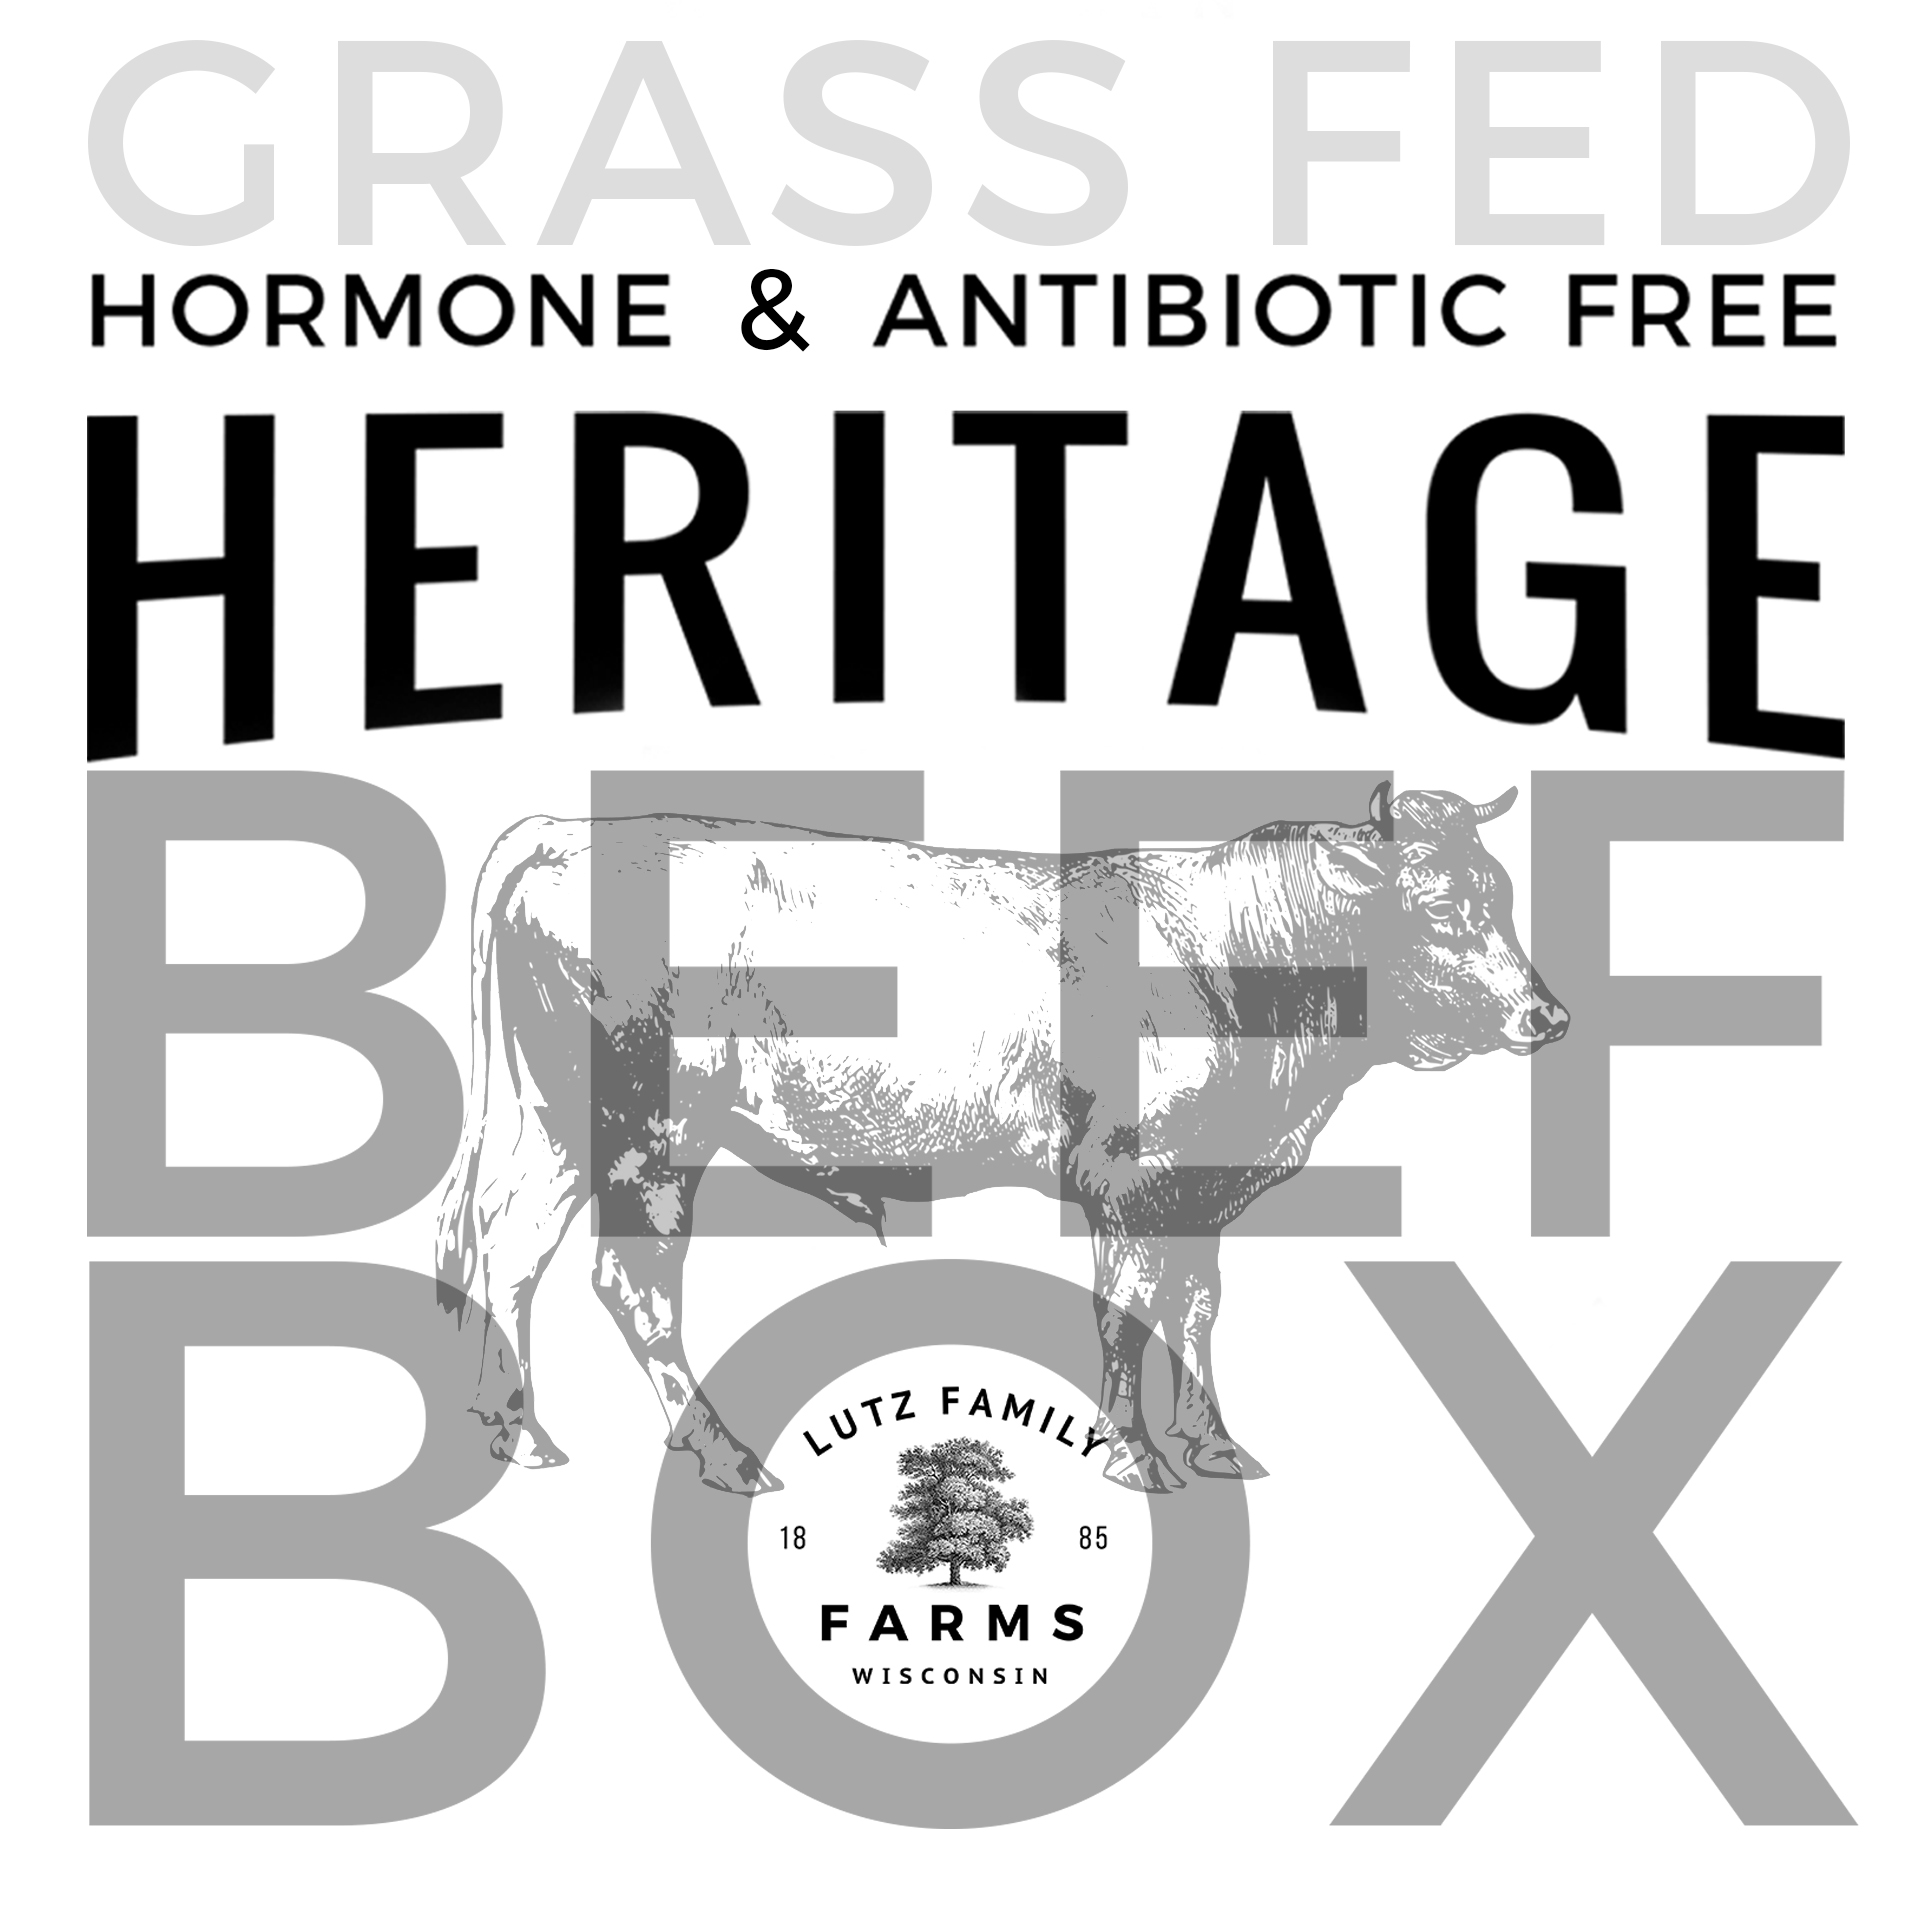 Wisconsin Locally Grown Grass Fed Hormone and Antibiotic Free Beef Shipped Directly to your door